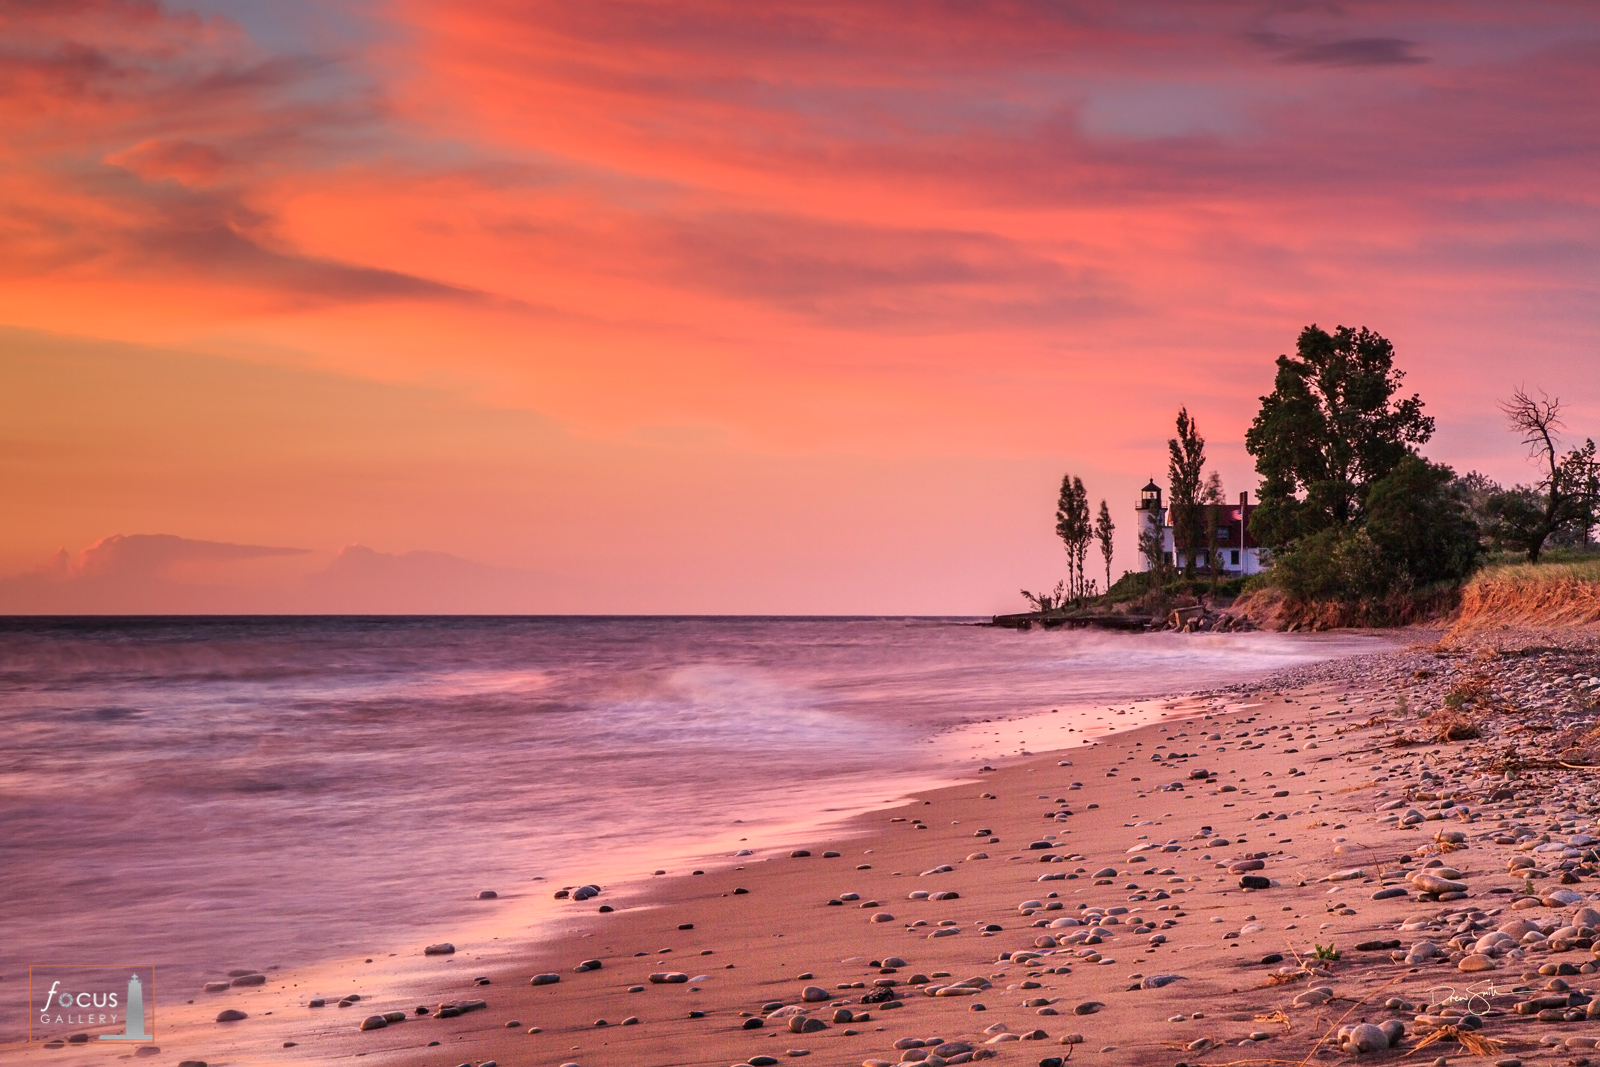 Colorful sunset at Point Betsie Lighthouse on the shore of Lake Michigan, Point Betsie, Benzie County, Michigan.